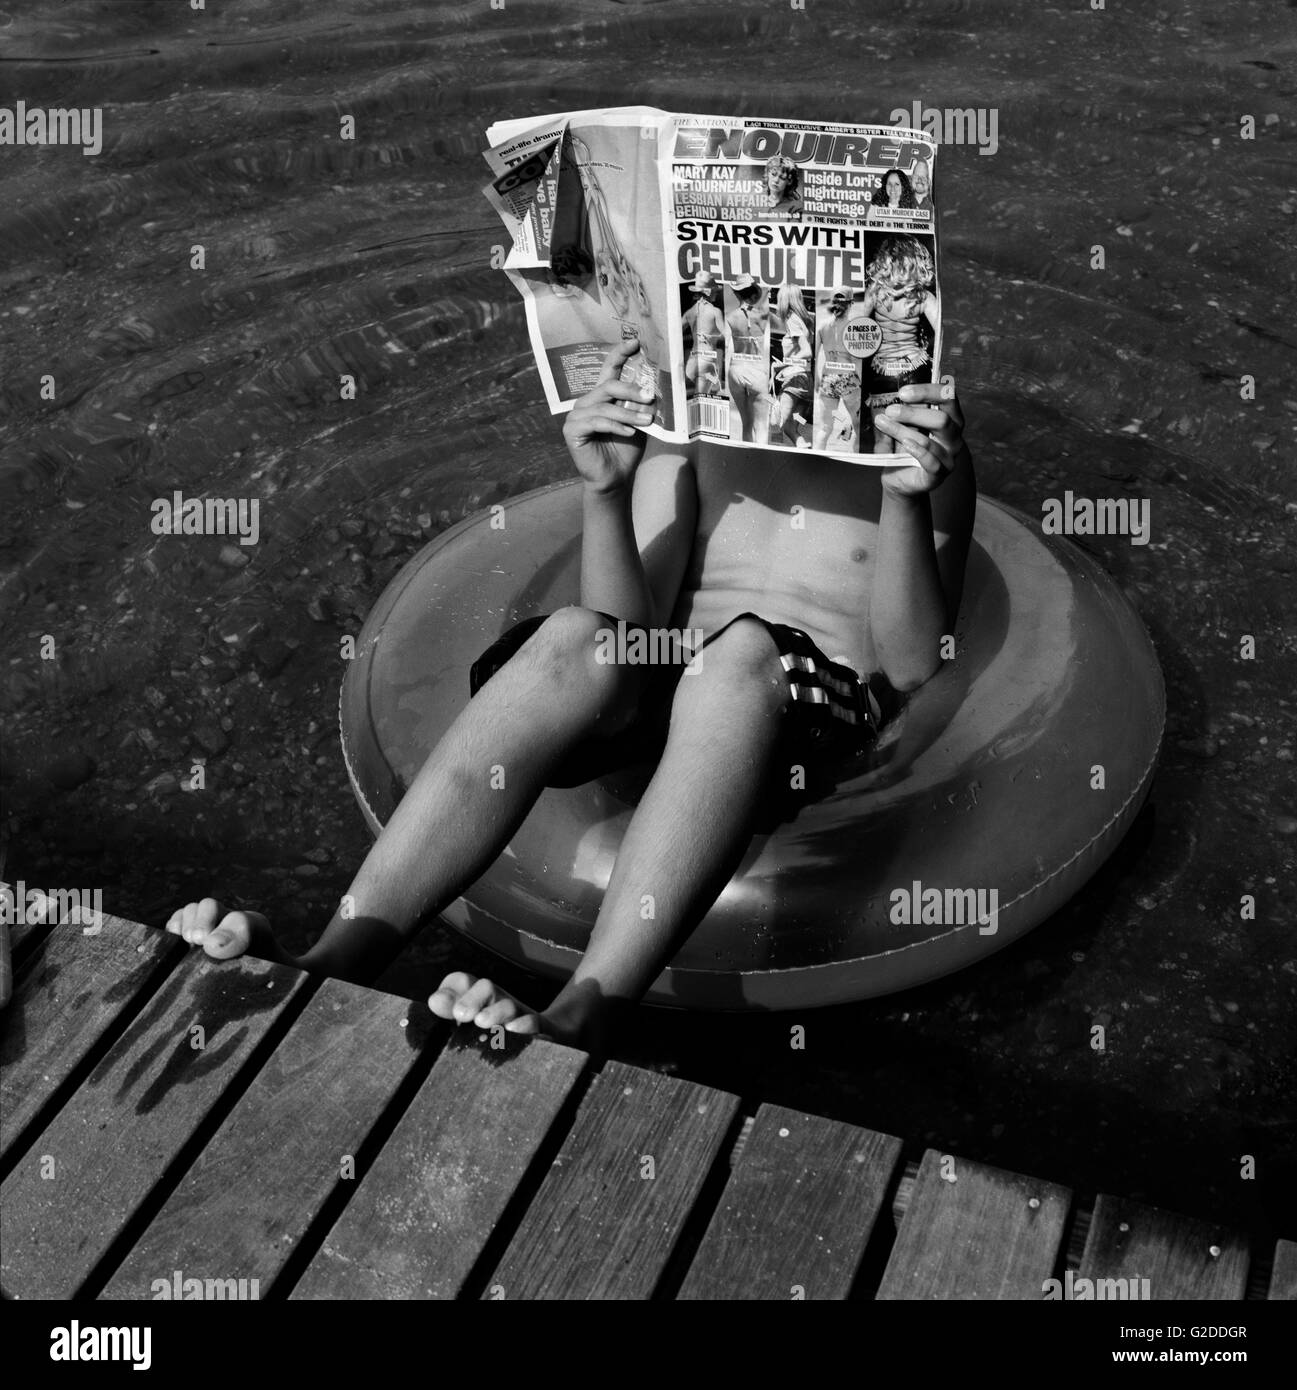 Boy Reading Newspaper While Sitting in Inflatable Tube - Stock Image